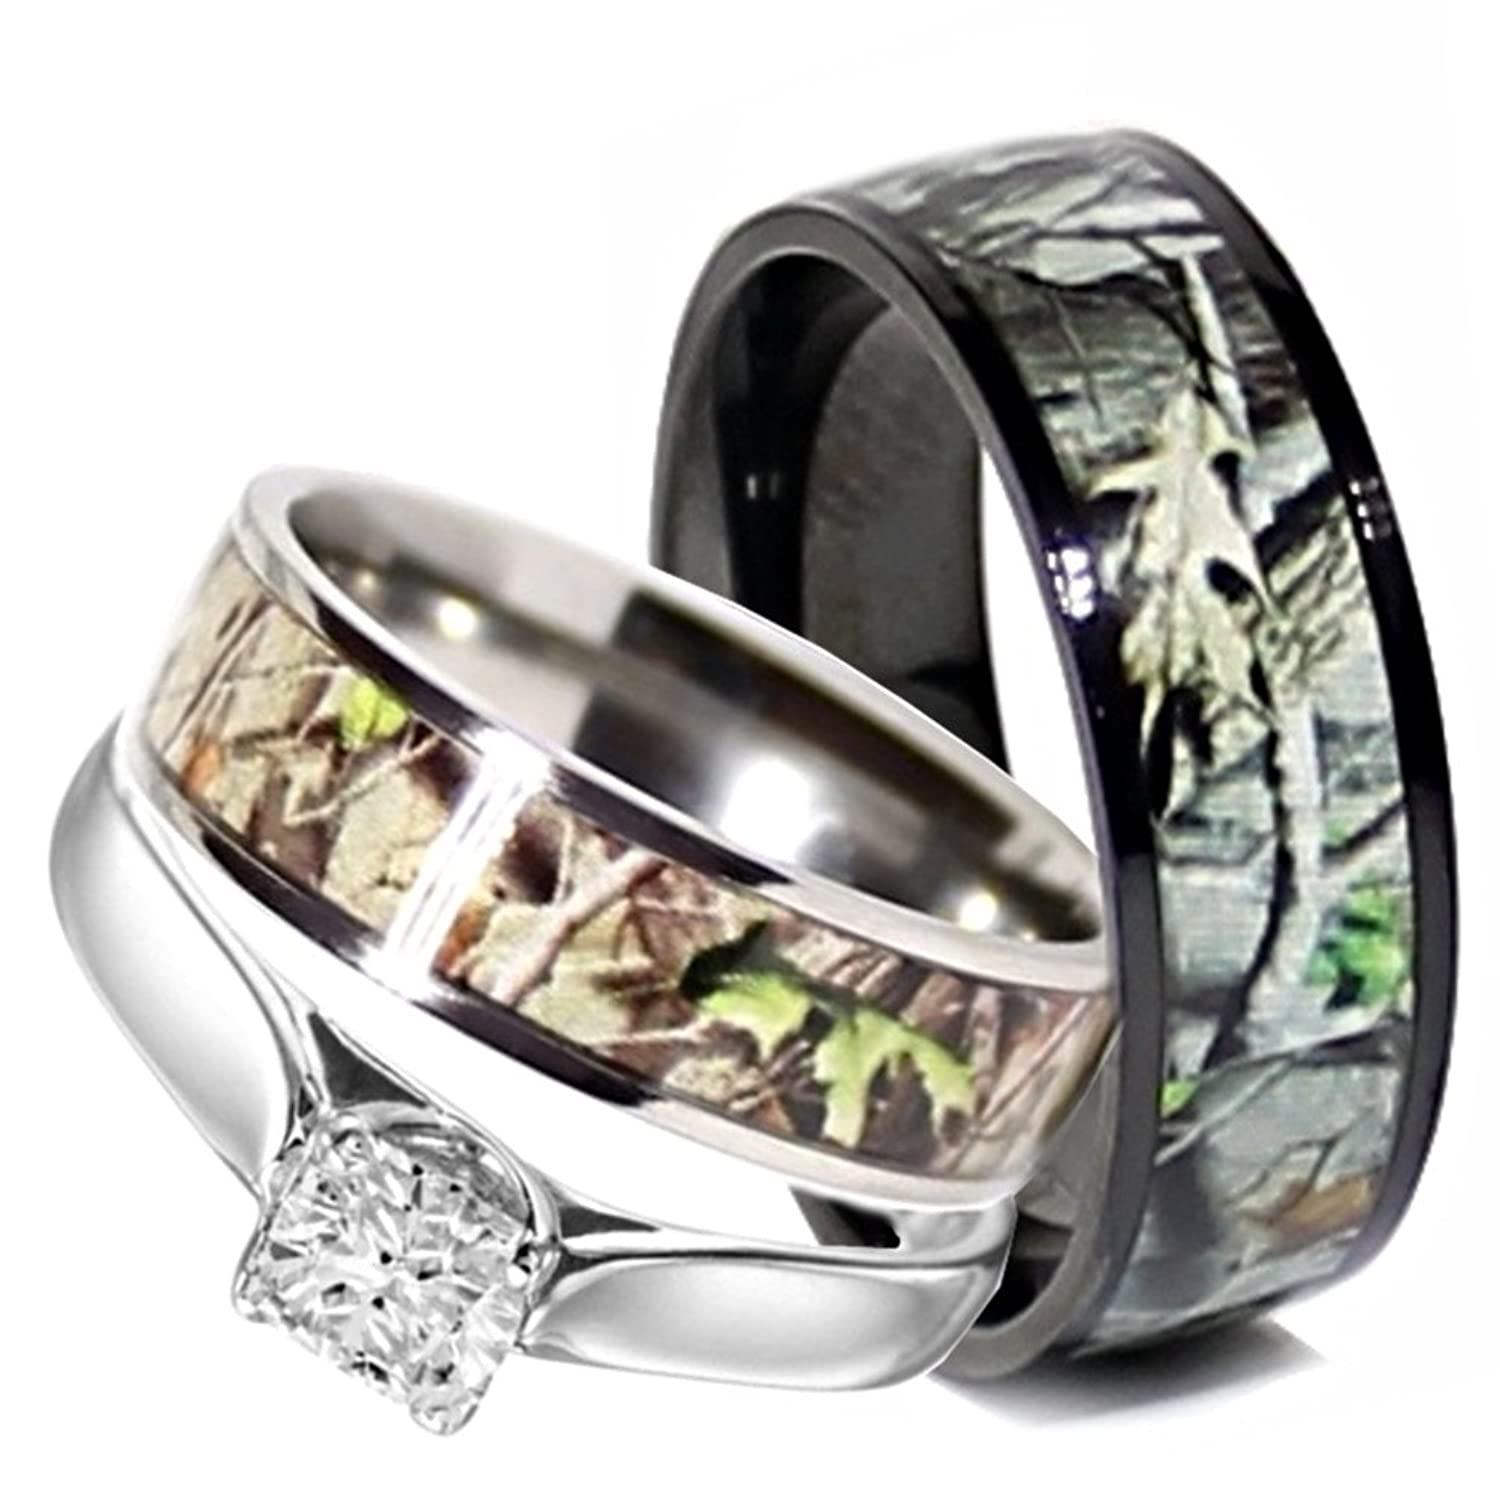 amazoncom camo wedding rings set his and hers 3 rings set sterling silver and titanium size men 10 women 10 jewelry - Camouflage Wedding Rings